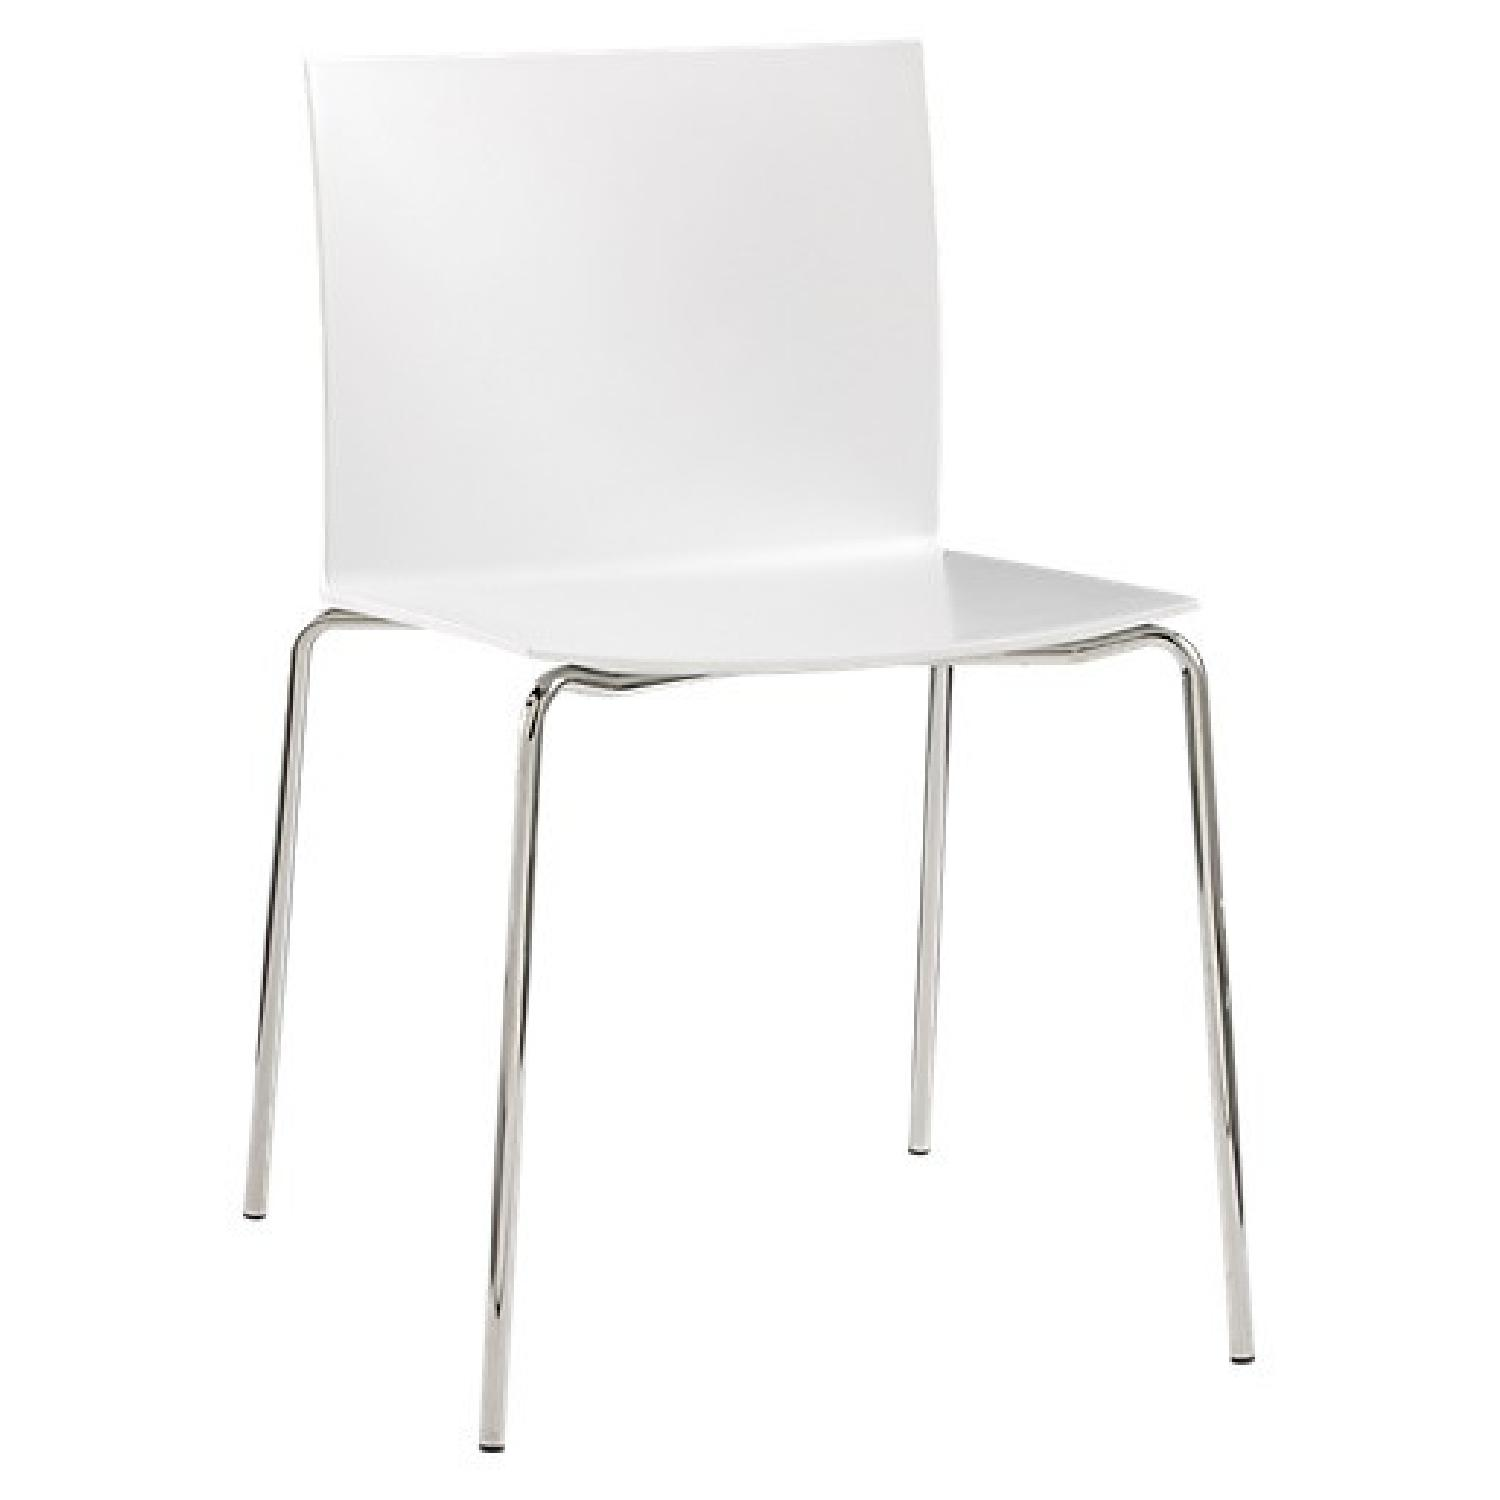 CB2 Stackable Slim Dining Chairs - image-0